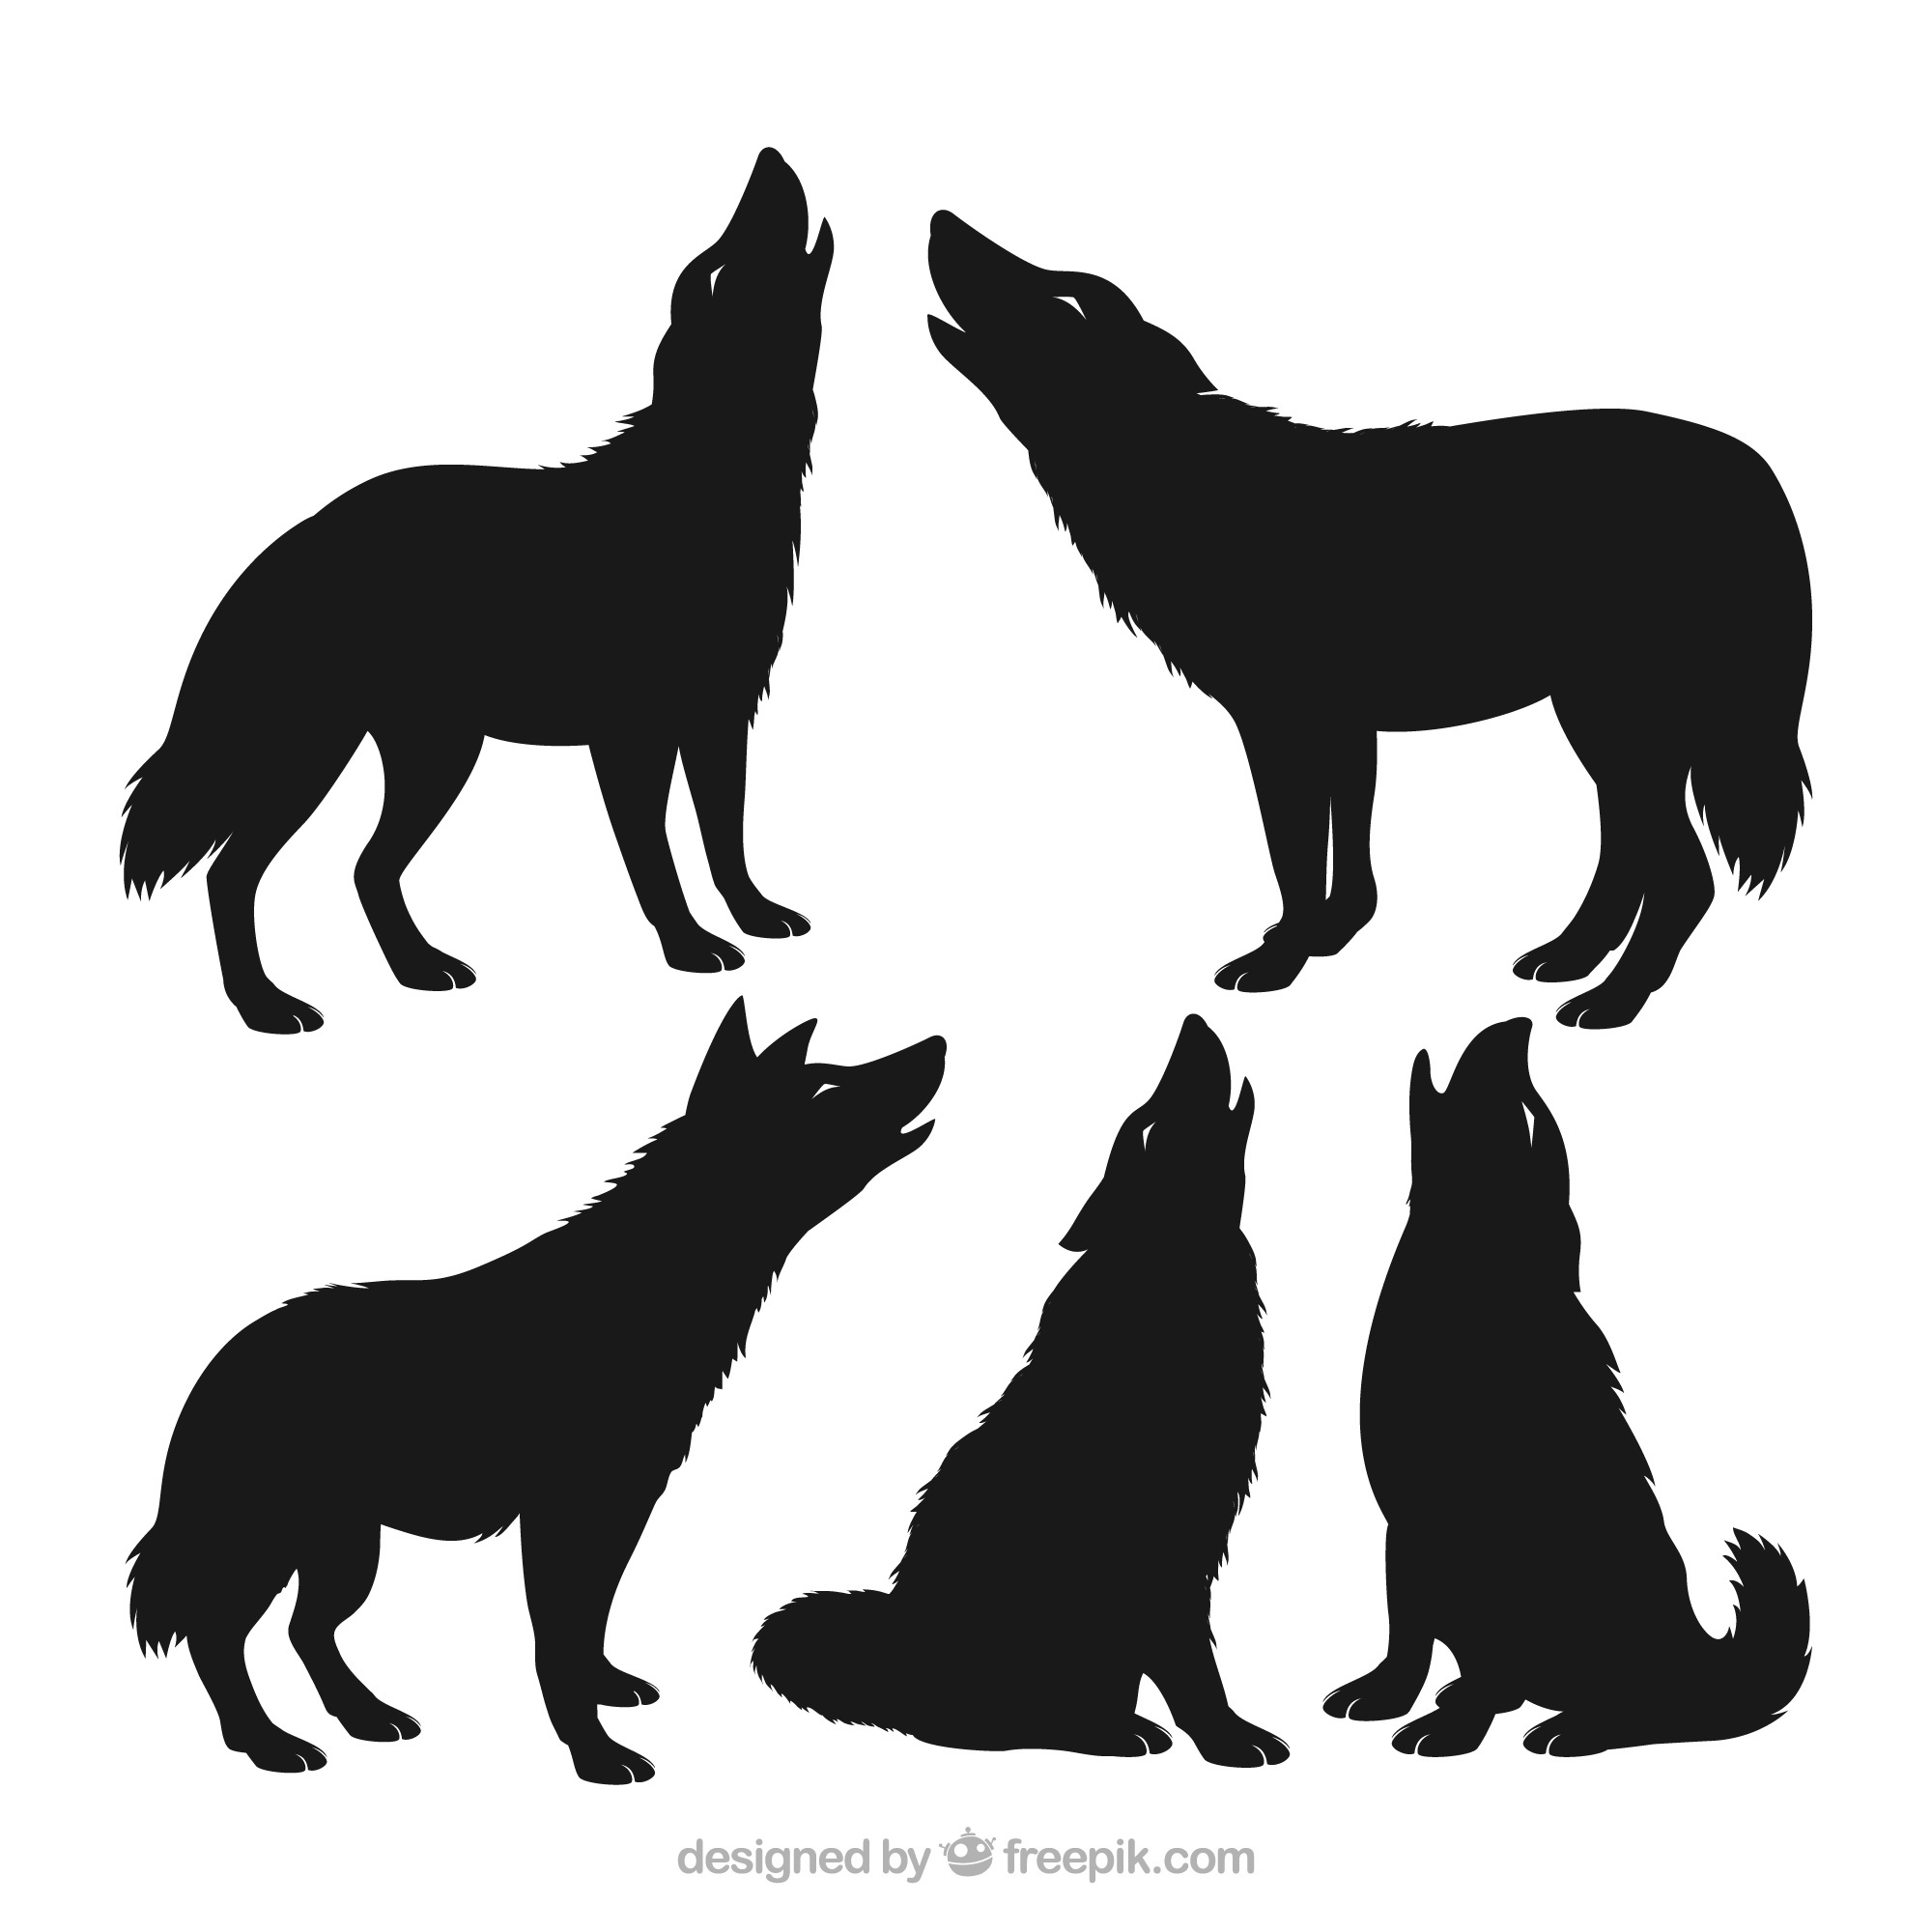 Pack of wolf silhouettes